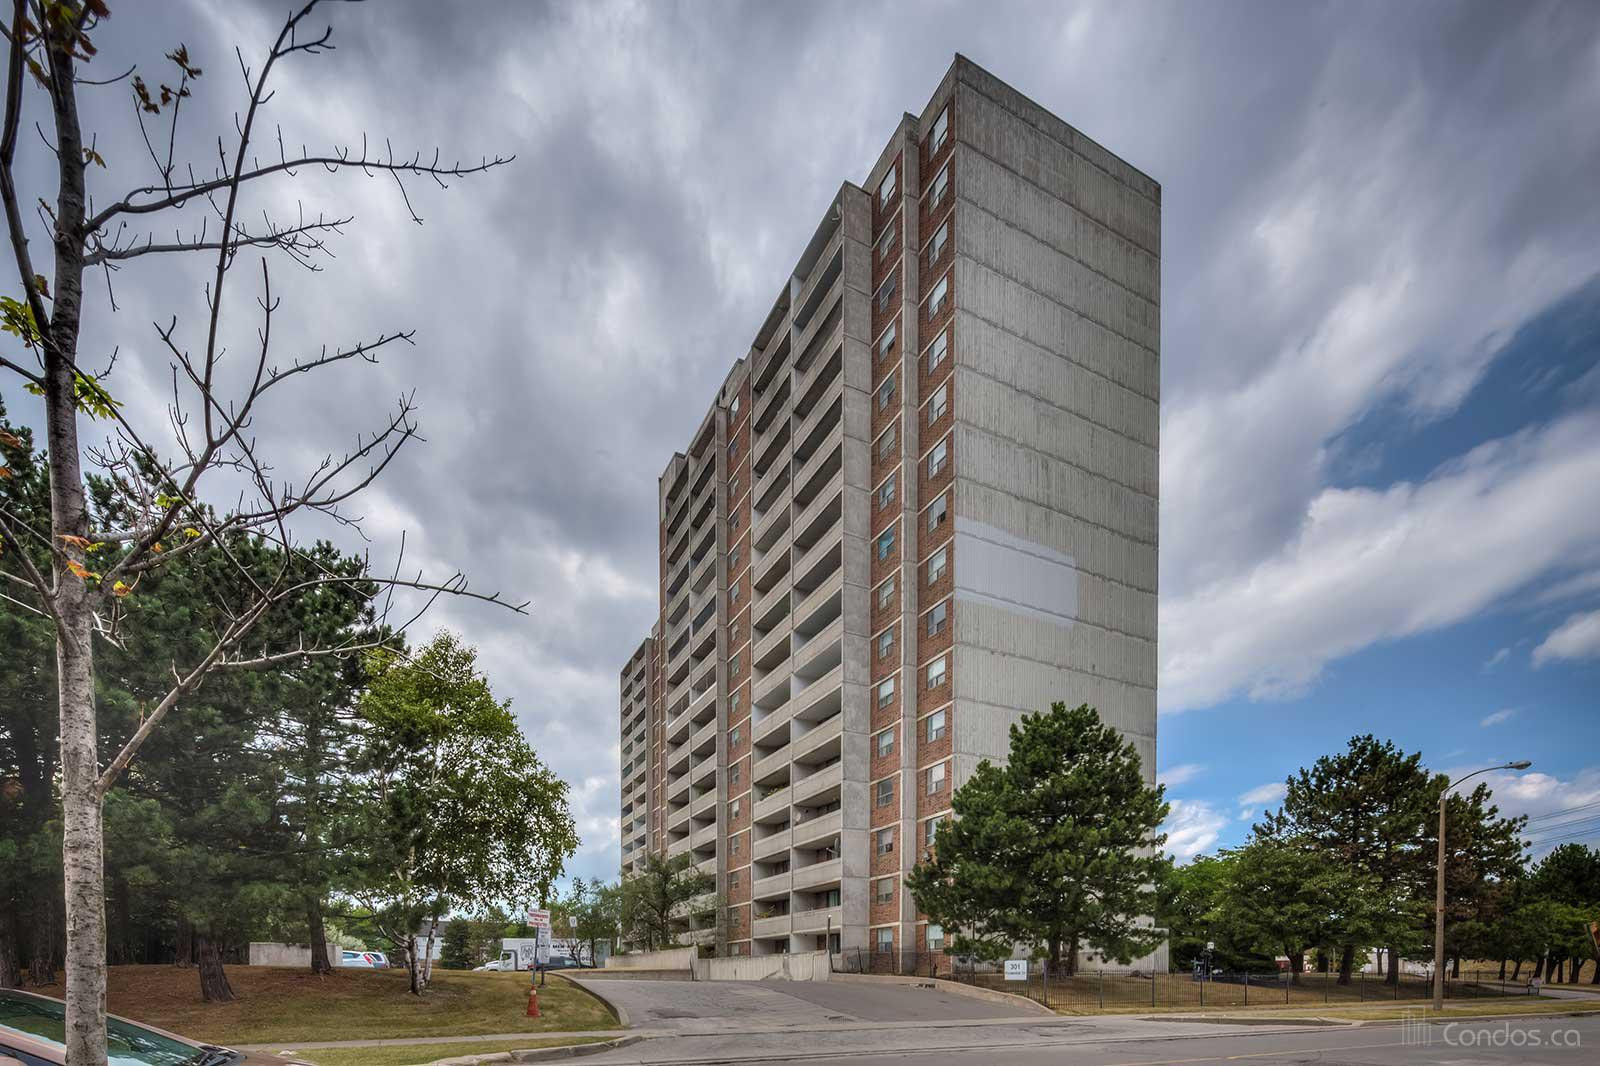 301 Prudential Drive Condos at 301 Prudential Dr, Toronto 0